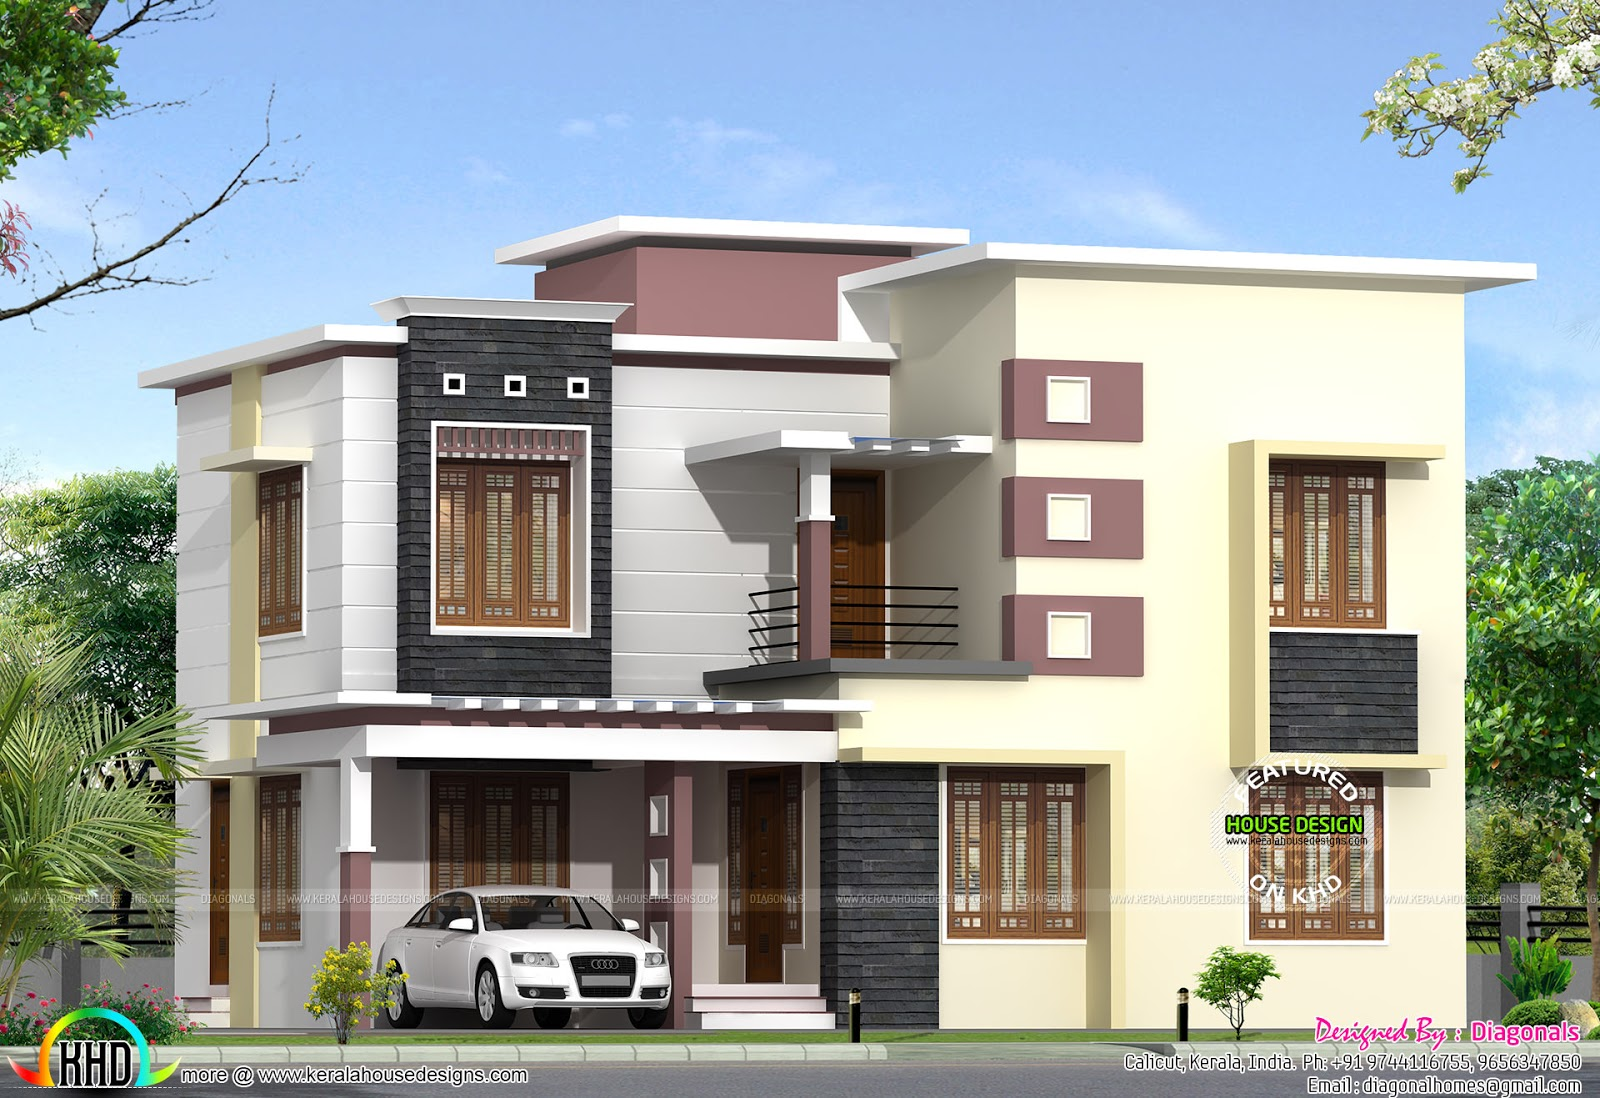 Modern box type 2068 sq-ft home | Kerala home design ...